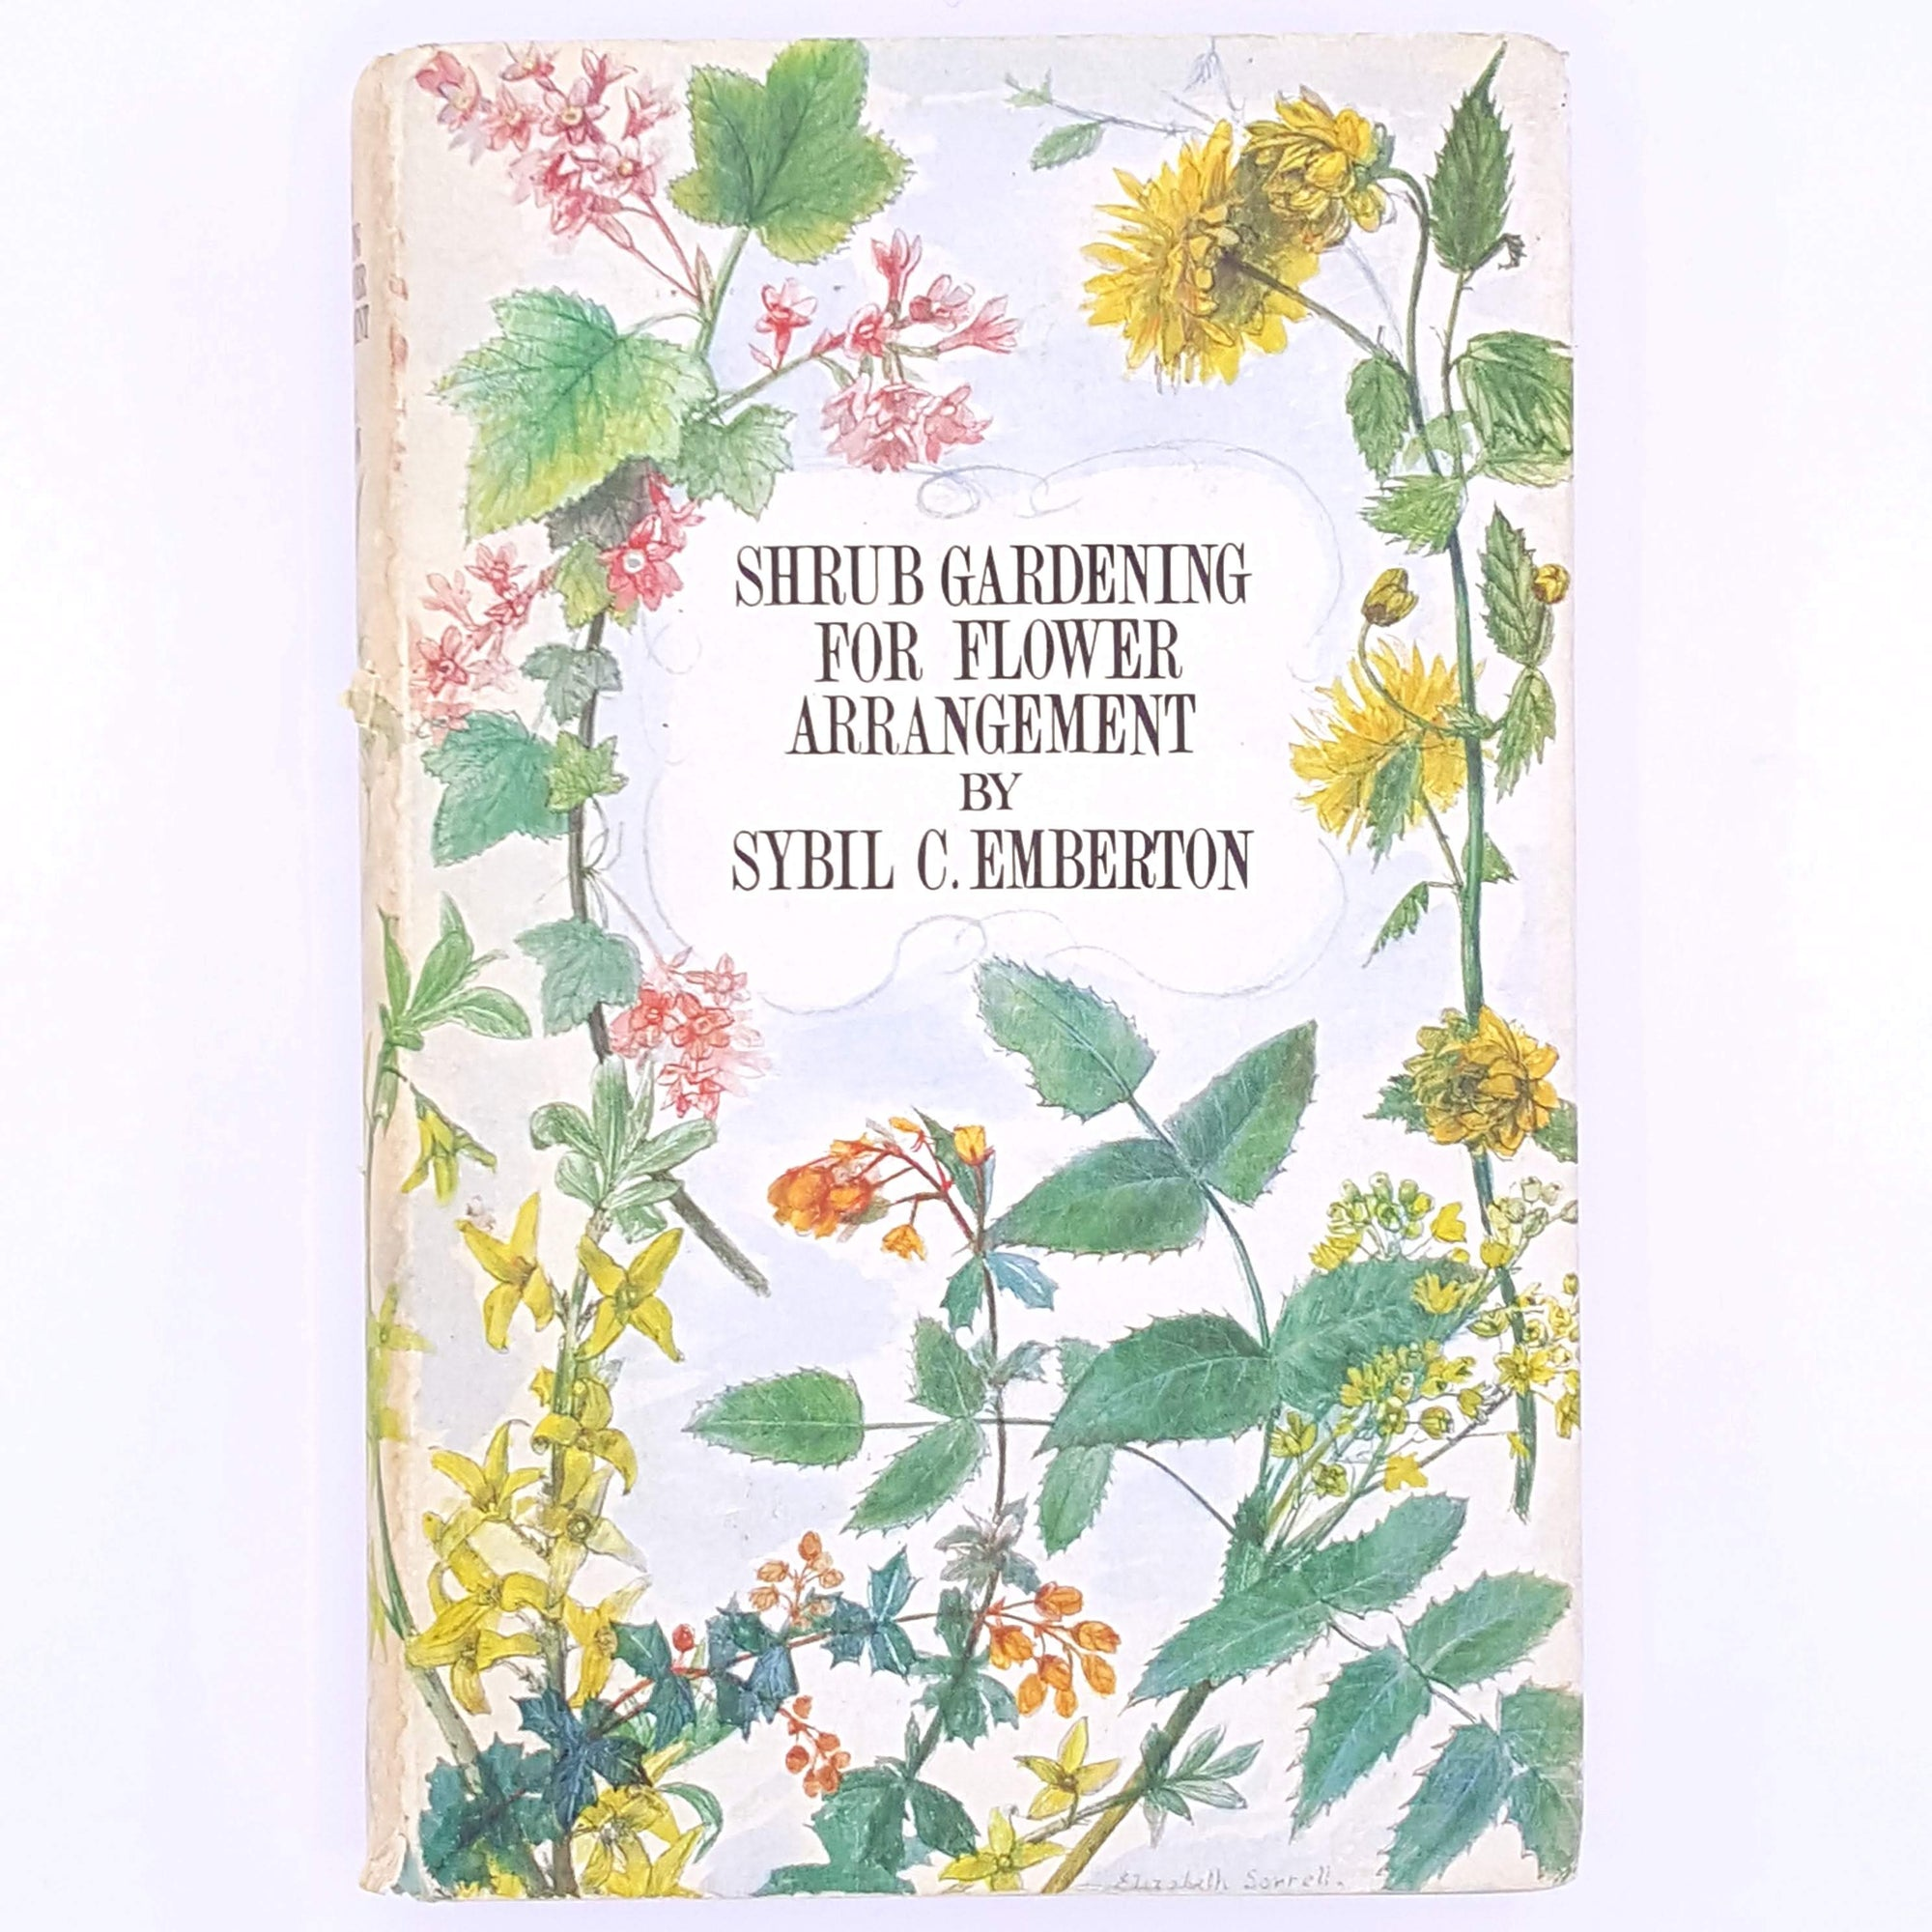 Garden Book Club, Shrub Gardening for Flower Arrangement, Sybil C.Emberton, 1965